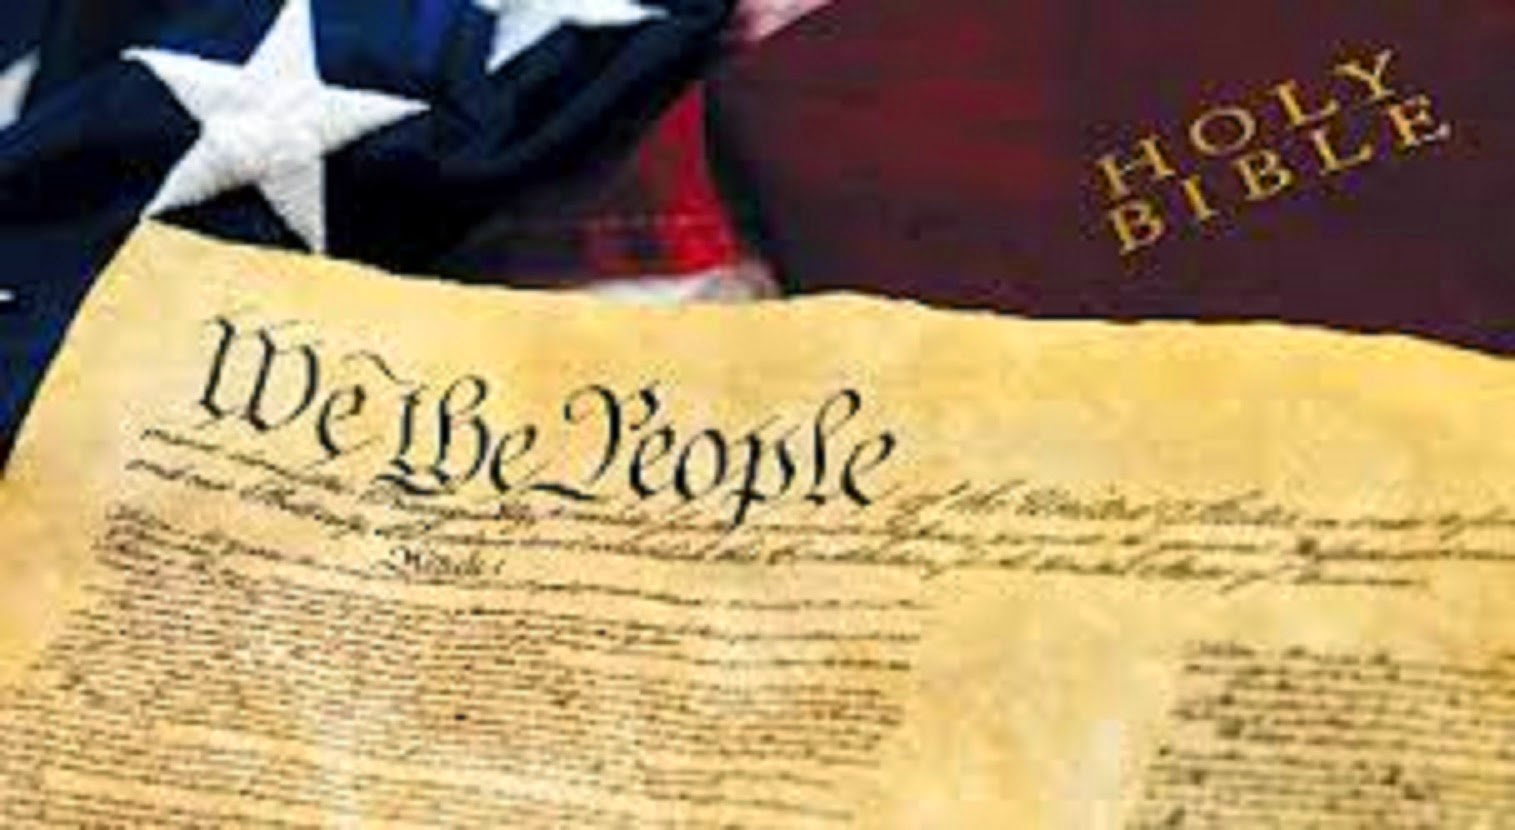 U.S. FLAG, BIBLE. AND THE CONSTITUTION - JULY 4th 1776